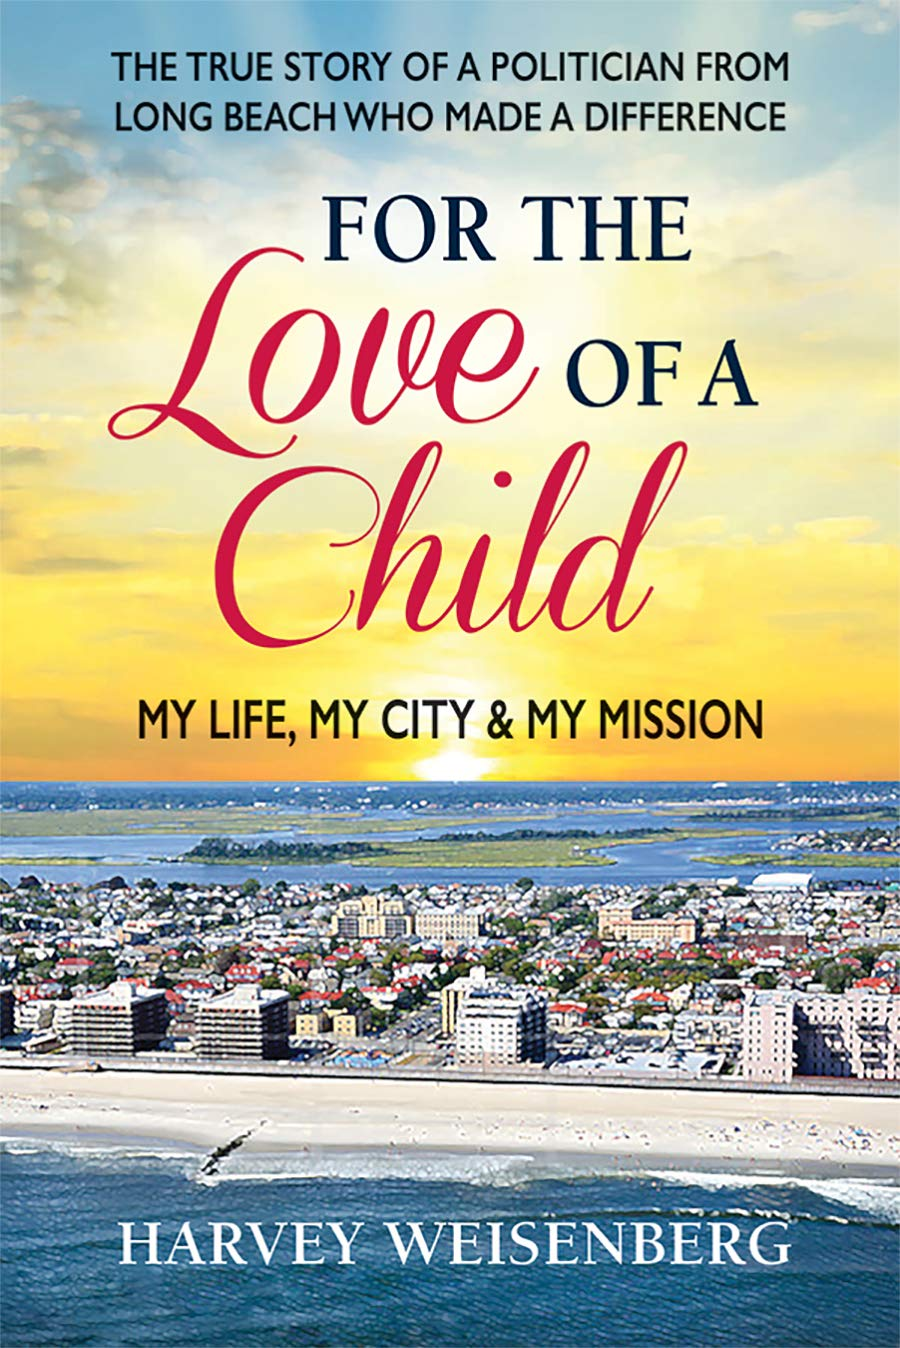 For the Love of a Child: My Life, My City & My Mission Paperback – October  4, 2018